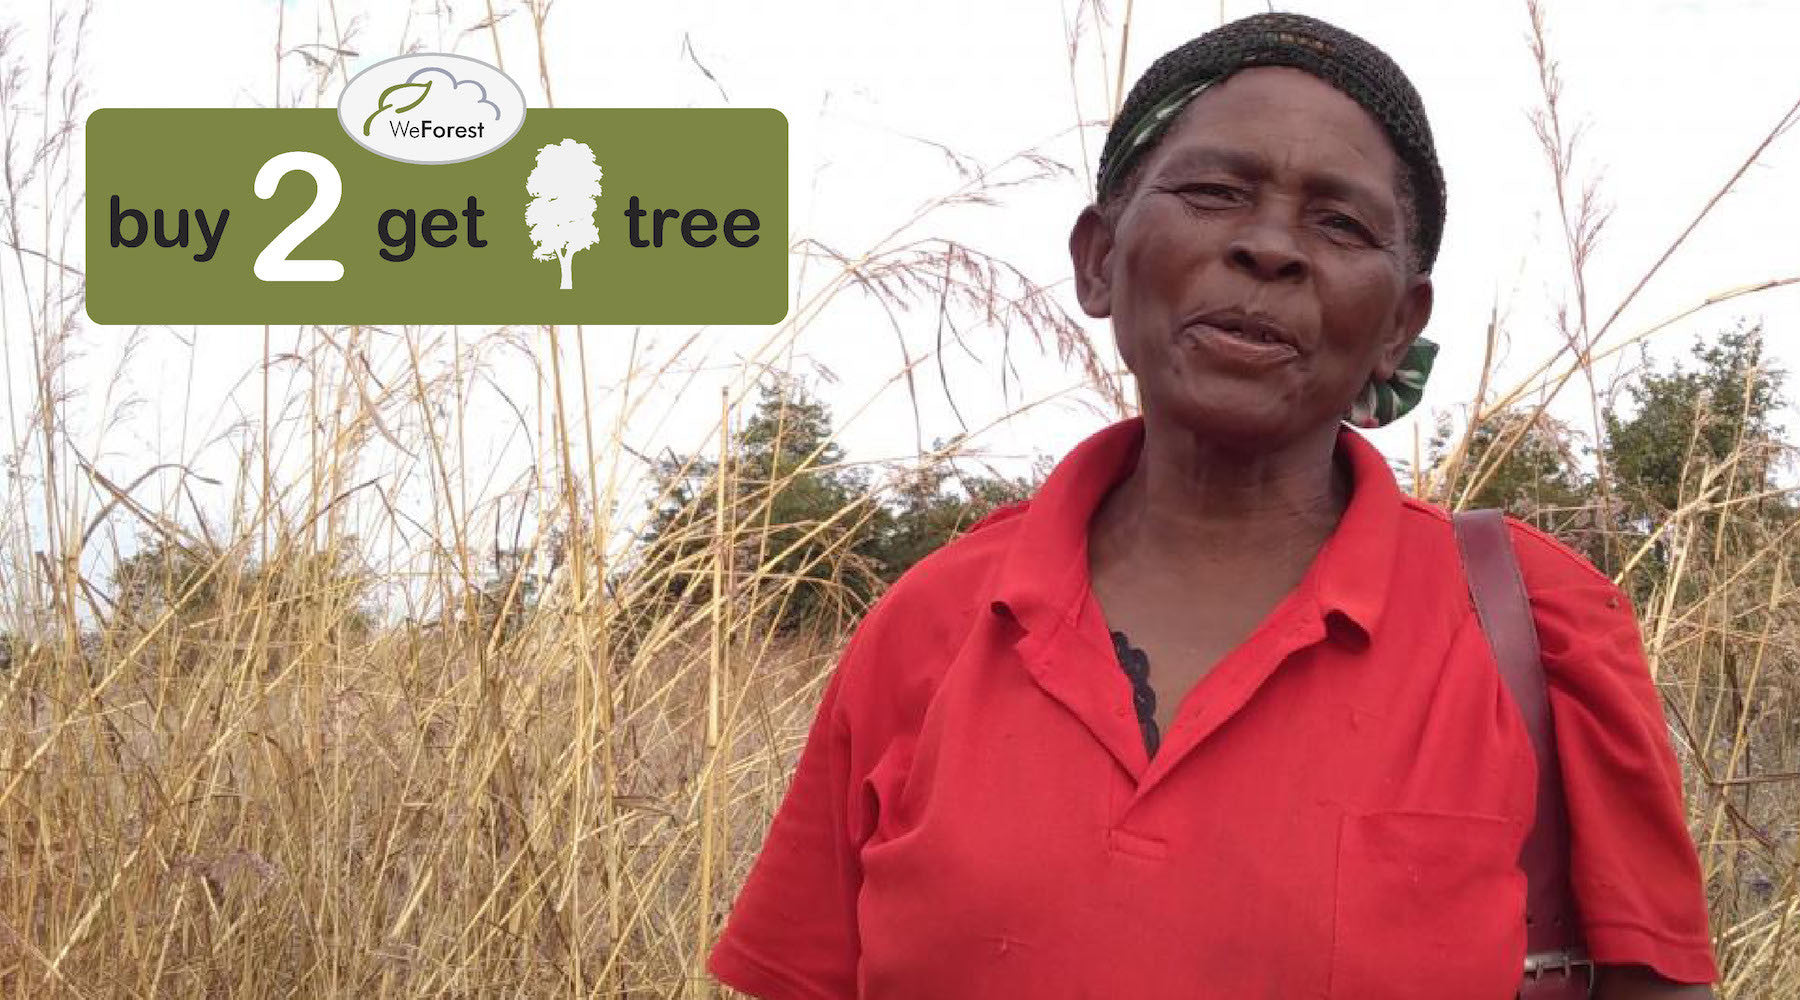 Why we support WeForest - plant 1 Tree for Every 2 Products sold